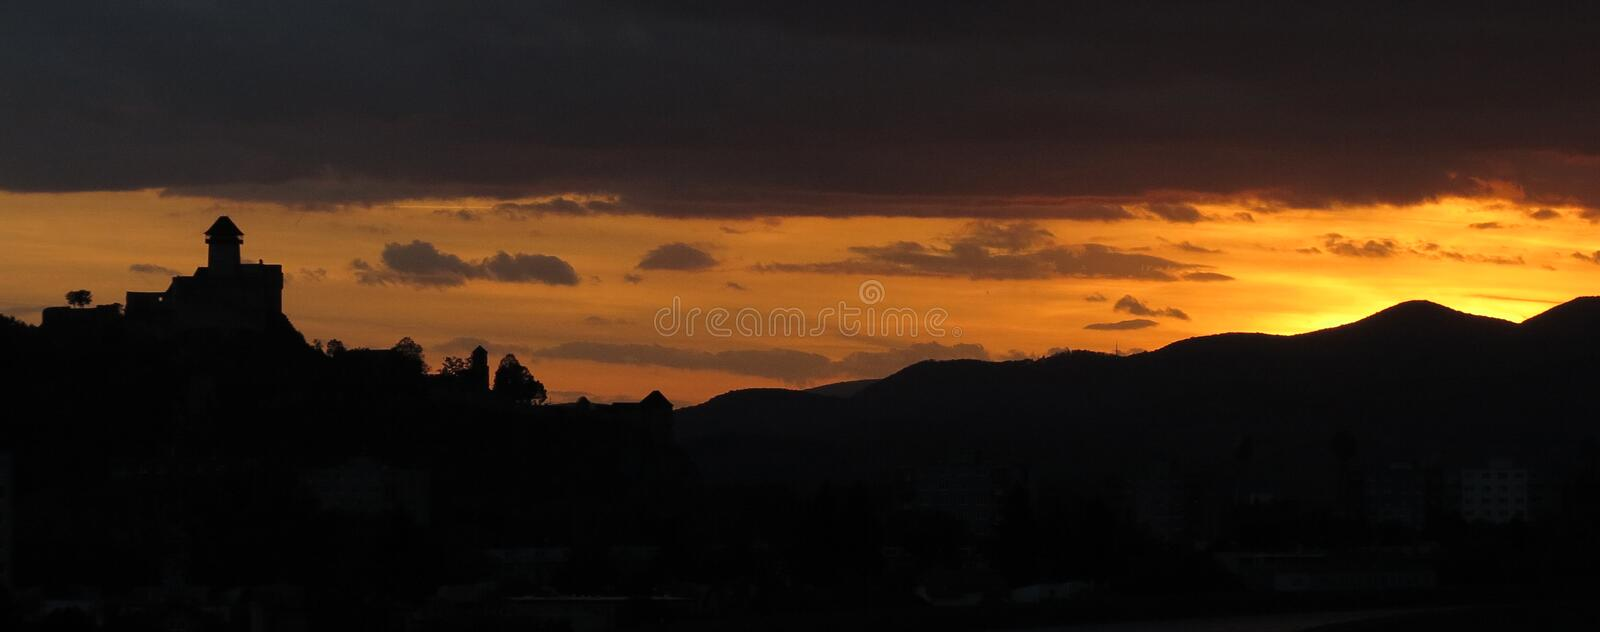 Trencin castle ruins by sunset, Slovakia royalty free stock photography